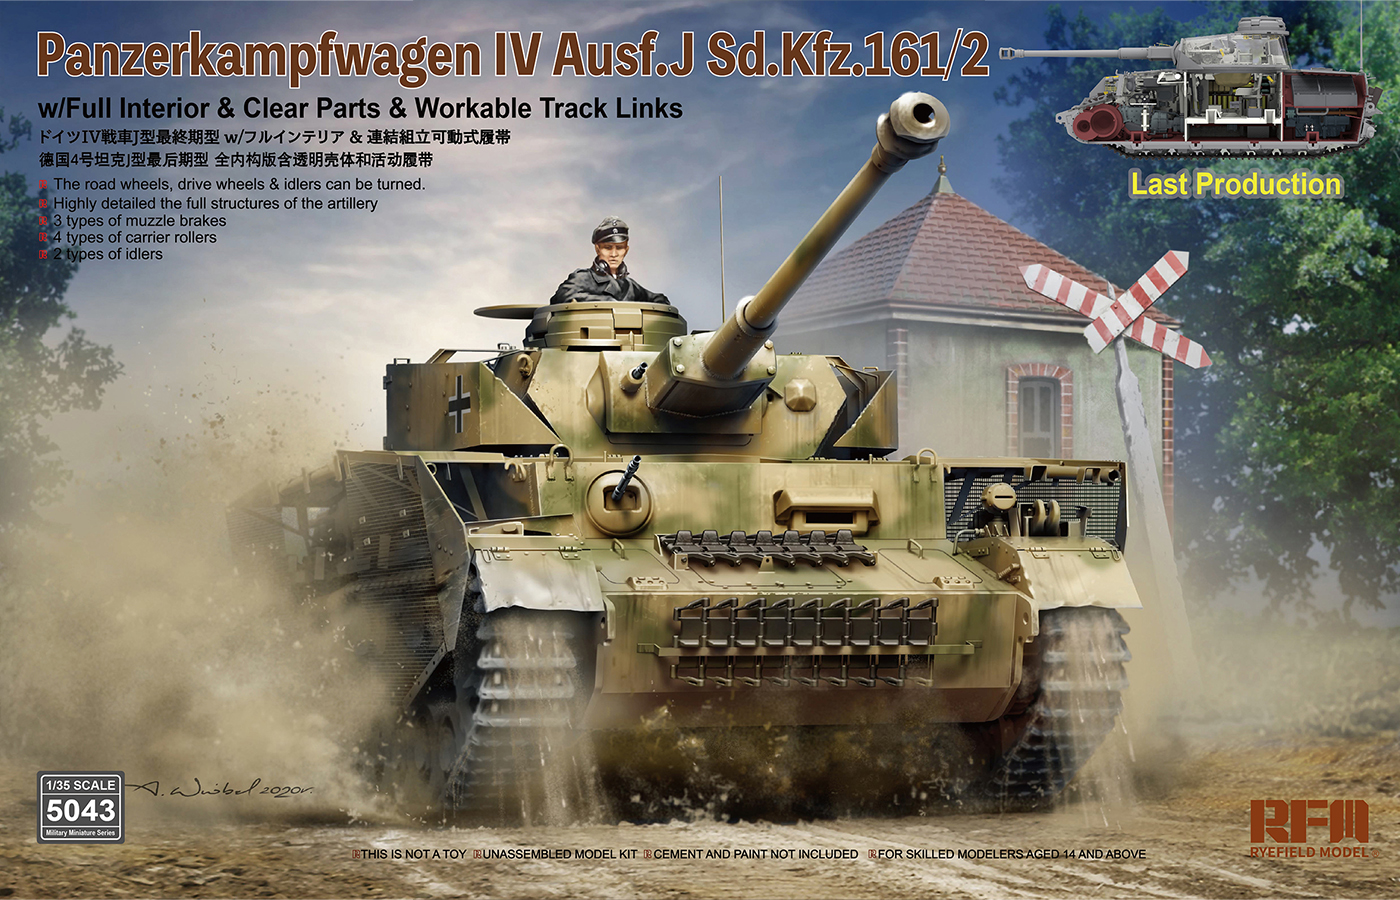 RM-5043 Panzerkampfwagen IV Ausf.J Sd.Kfz.161/2 (w/full interior&clear parts&workle track links)